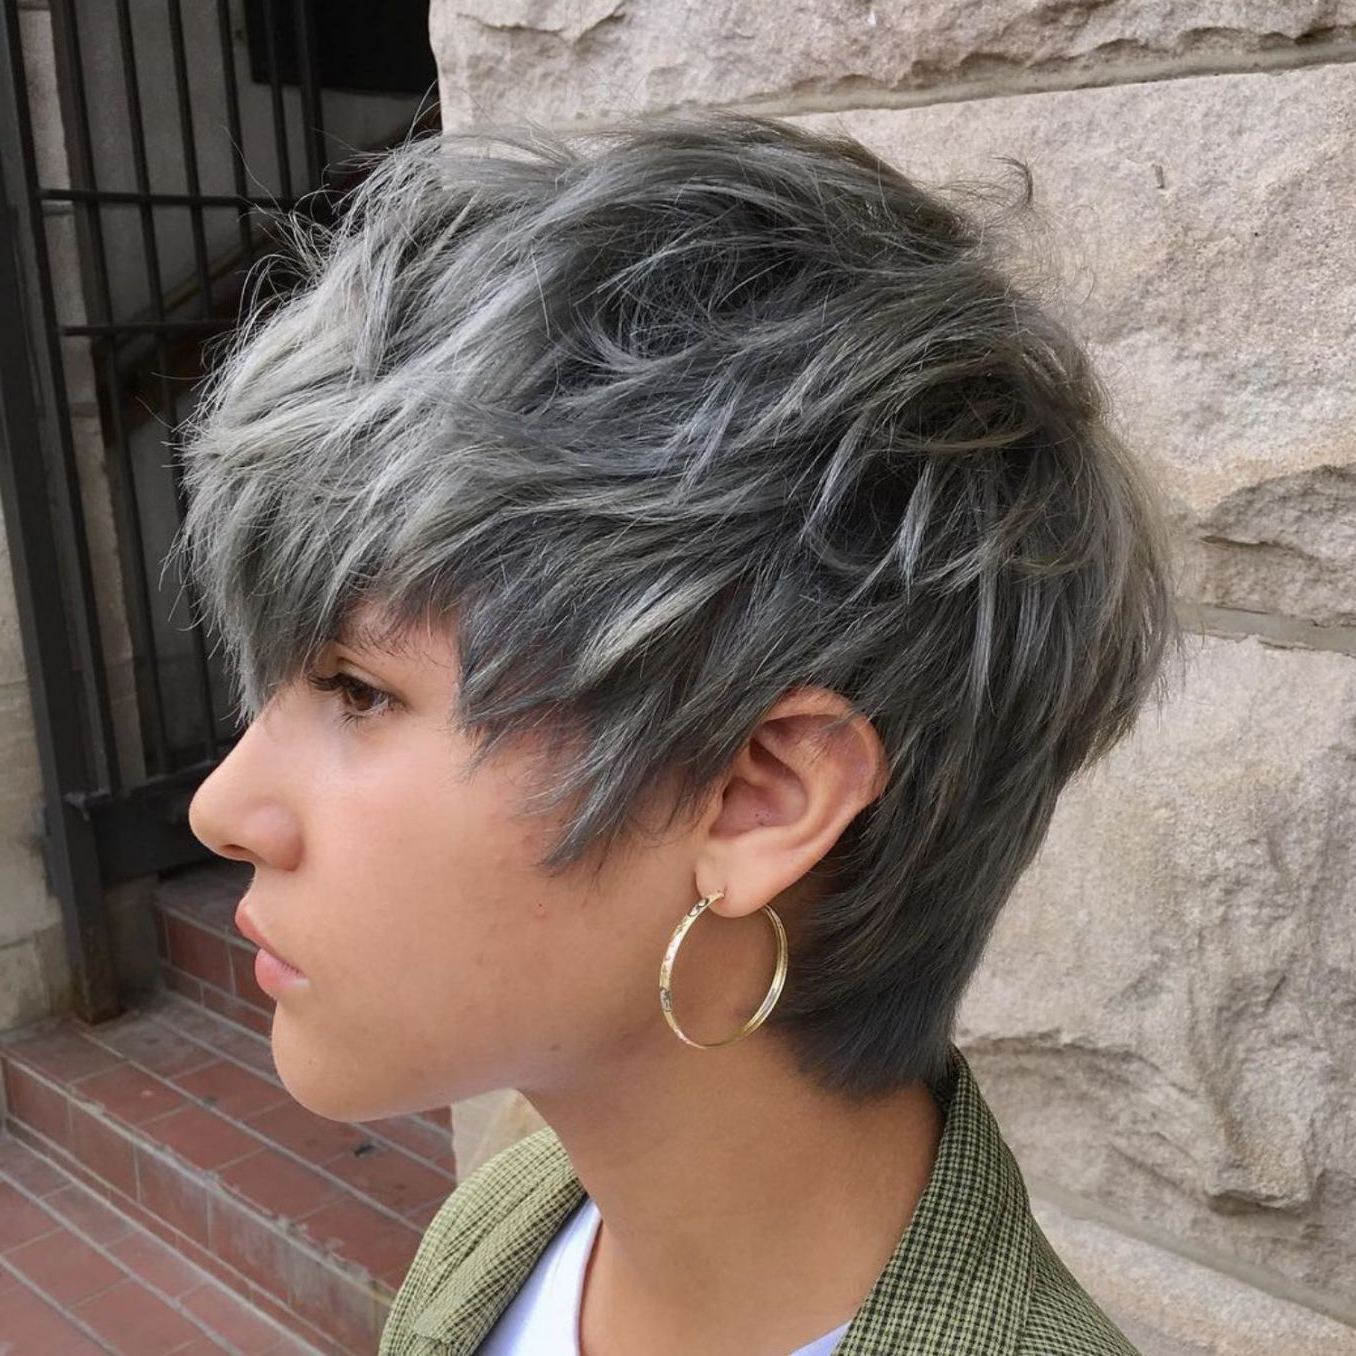 Pixie Haircuts For Thick Hair – 50 Ideas Of Ideal Short Haircuts With Gray Pixie Hairstyles For Thick Hair (View 17 of 20)